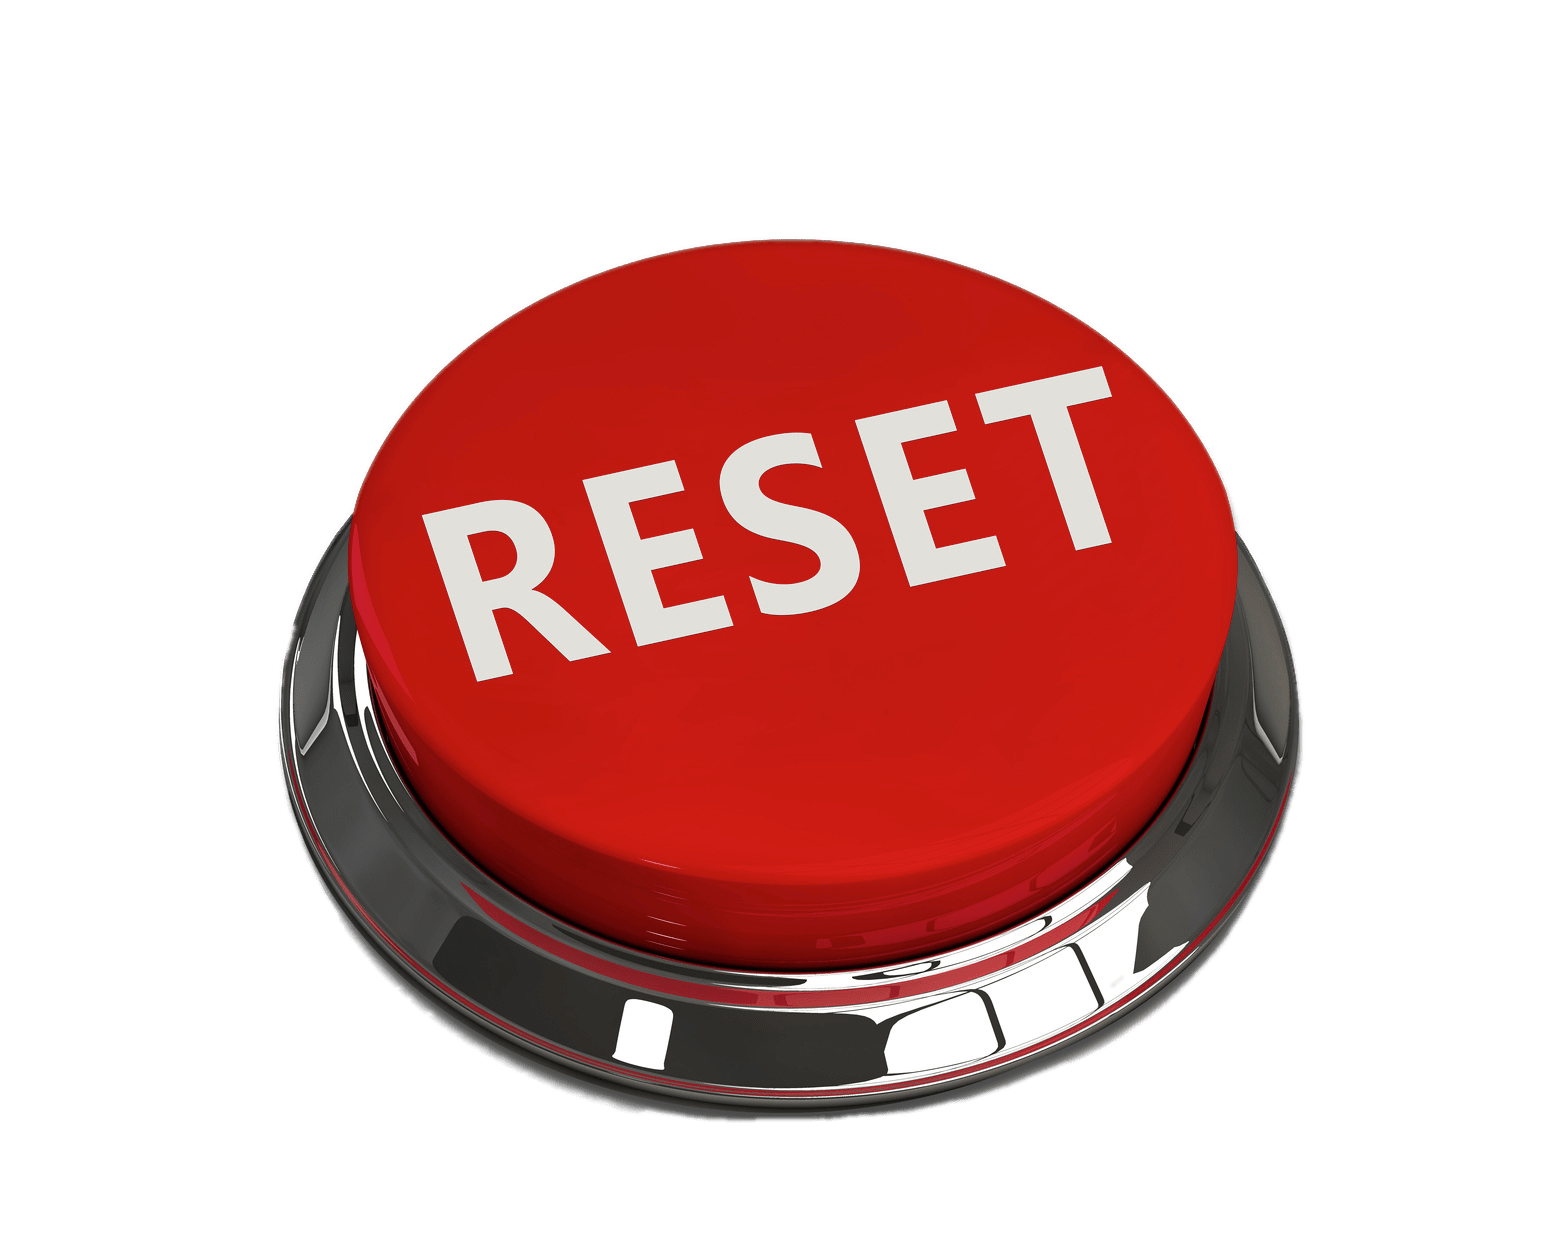 Reset button png. Round transparent stickpng download